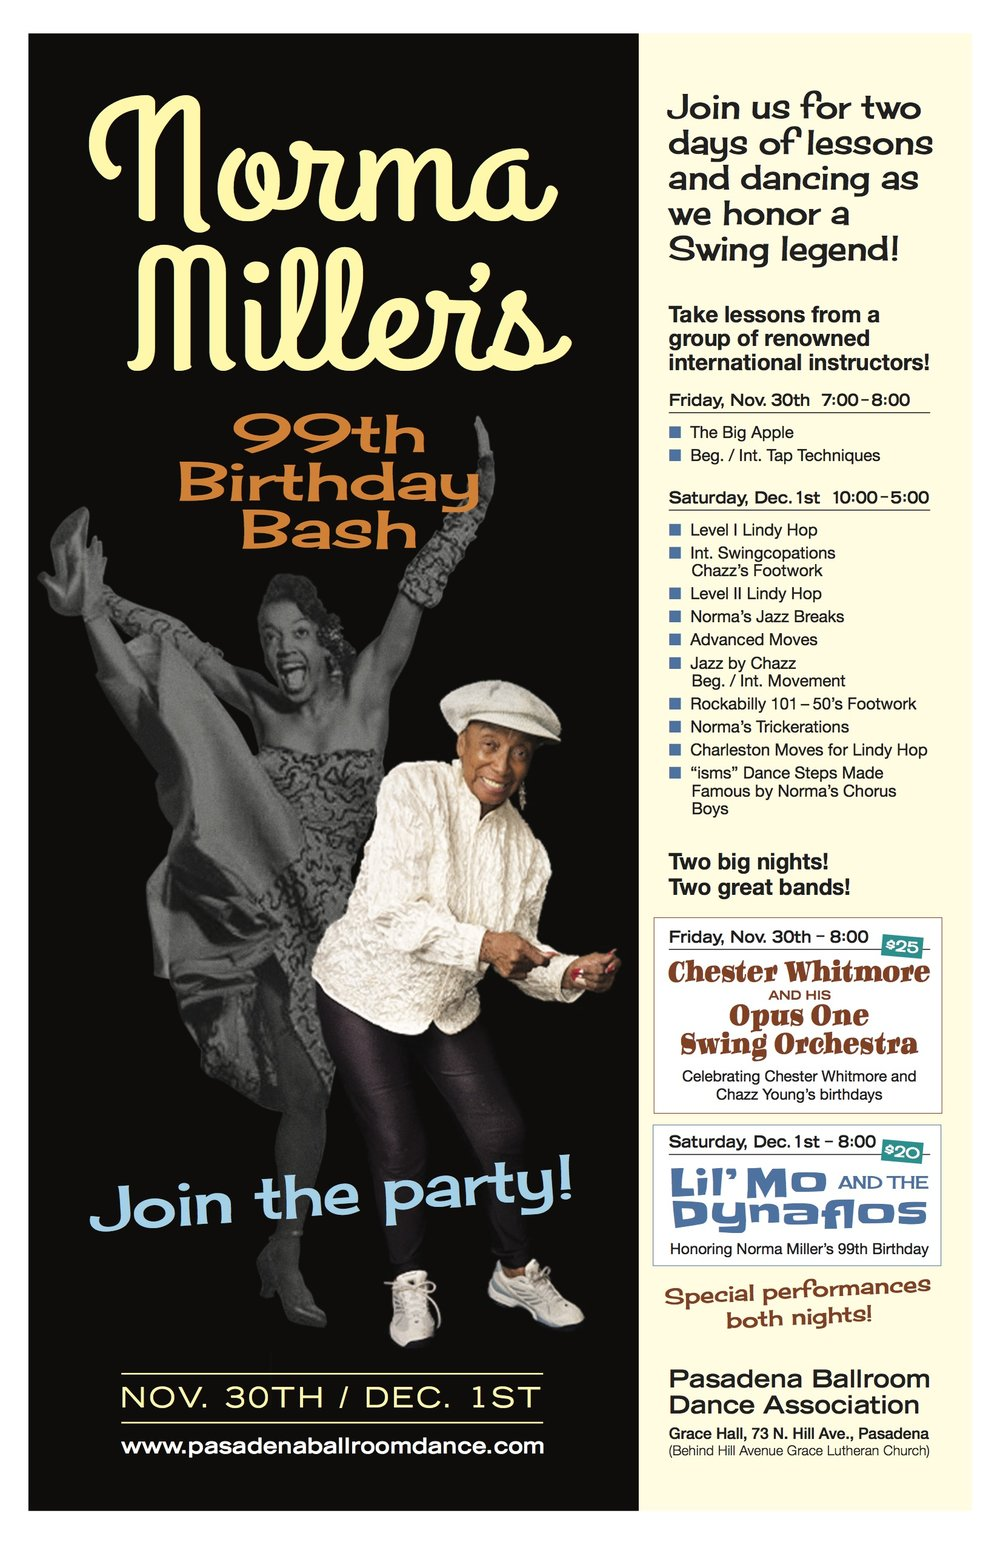 Poster for the Norma Miller Birthday Celebration